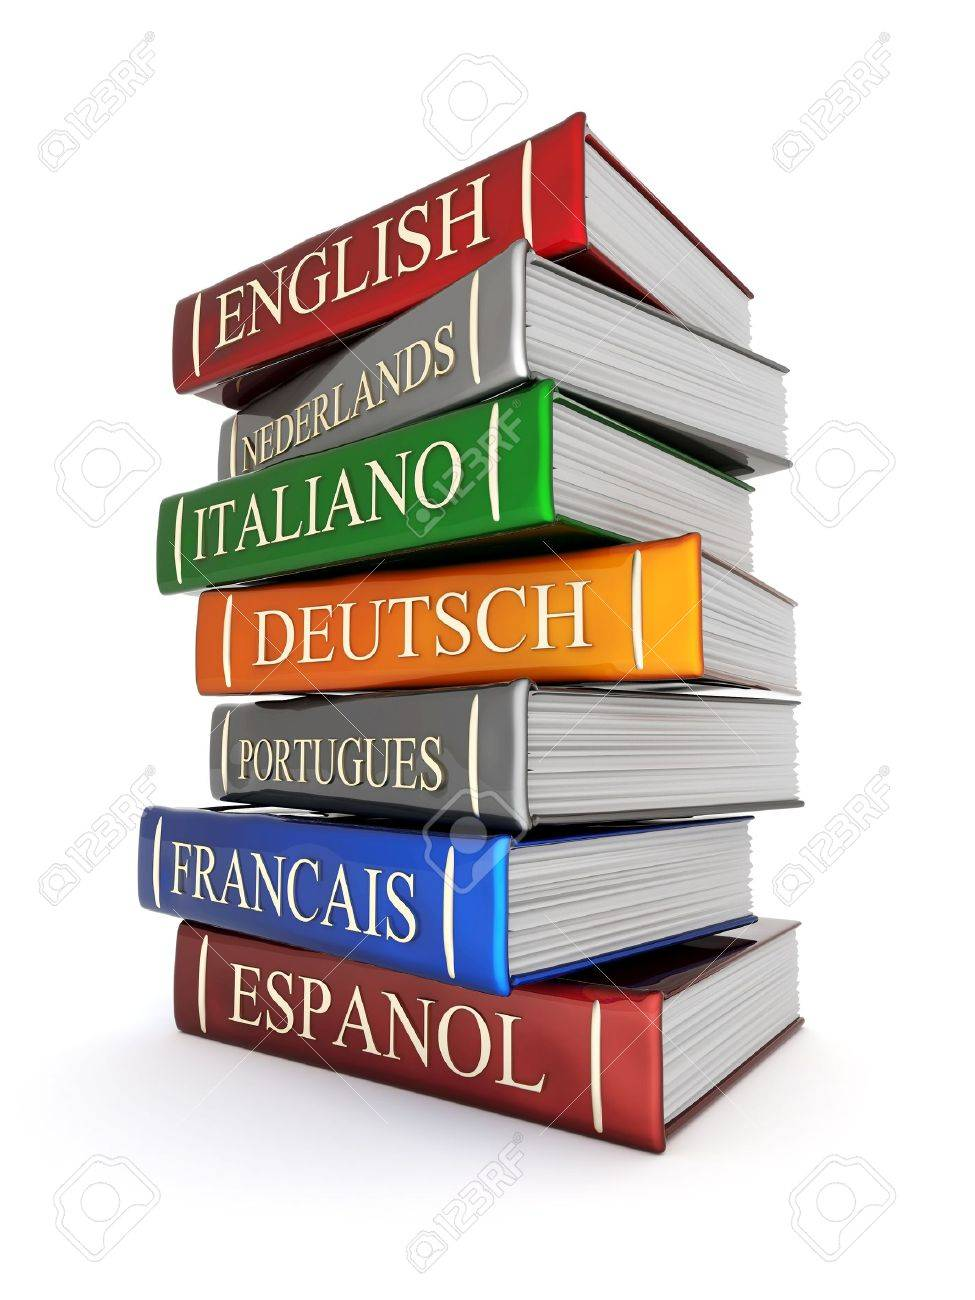 Translate - Picture Pages Books Bindings And Literature Stock Photo 10337605